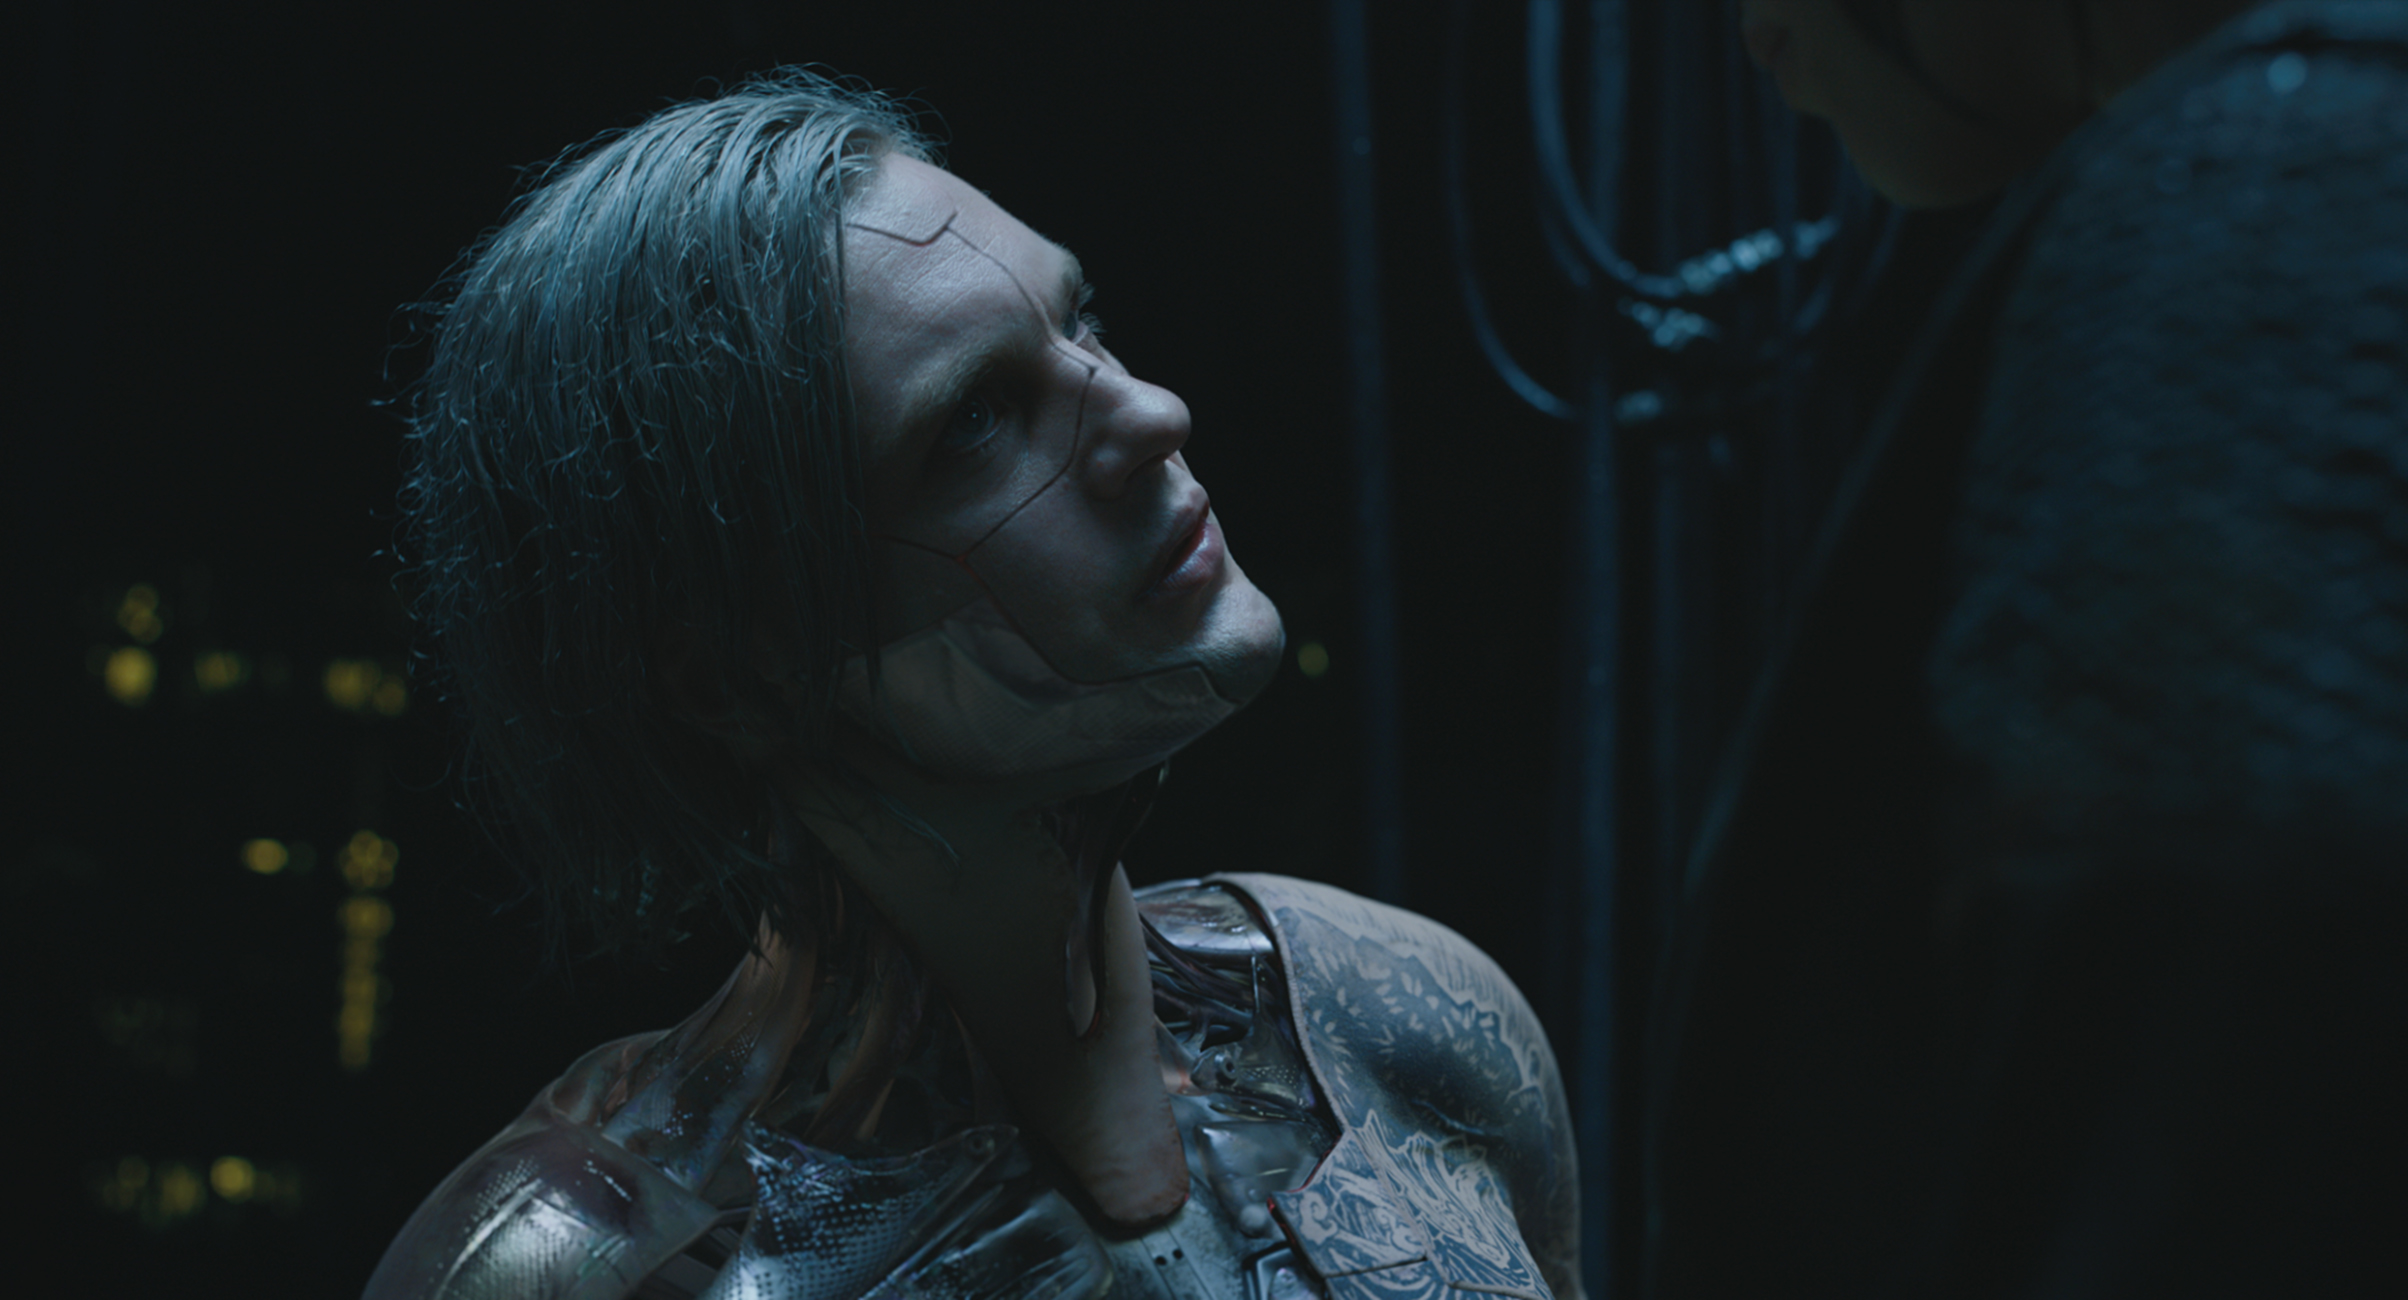 Michael Carmen Pitt plays Kuze in Ghost in the Shell from Paramount Pictures and DreamWorks Pictures.